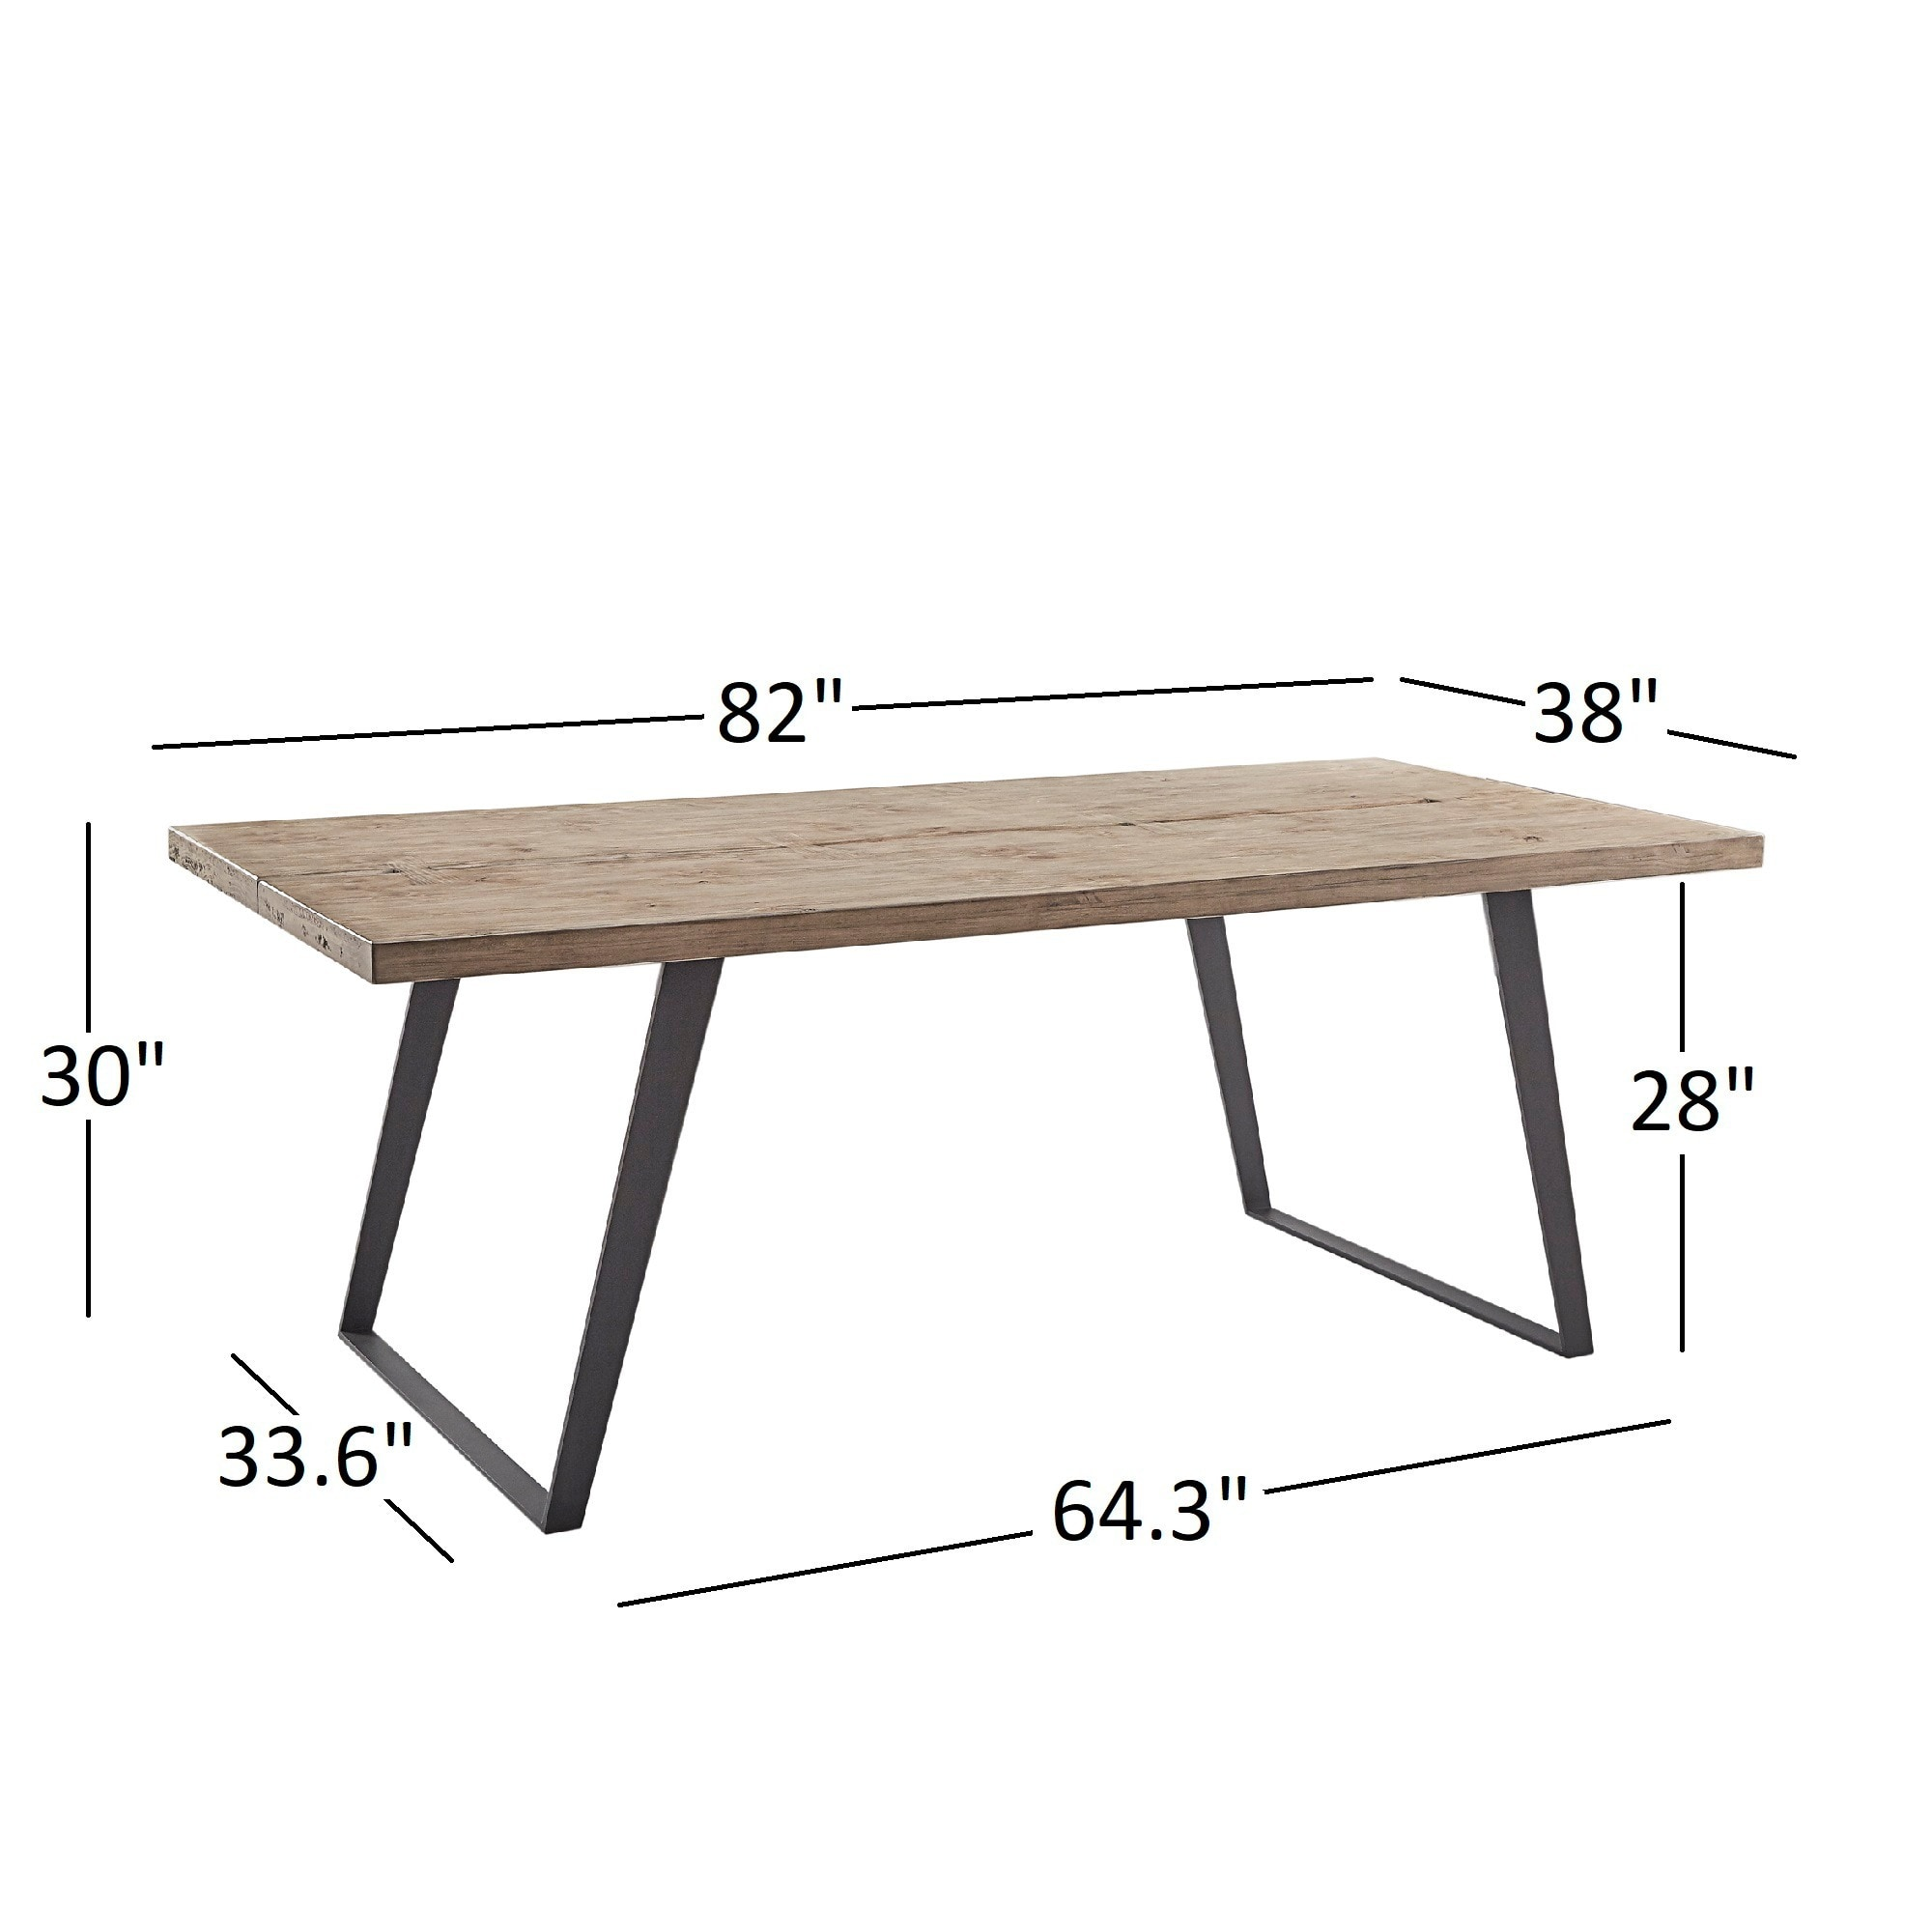 Division Split Top Mixed Media Industrial Wood Dining Table iNSPIRE Q  Modern - Free Shipping Today - Overstock.com - 21887303